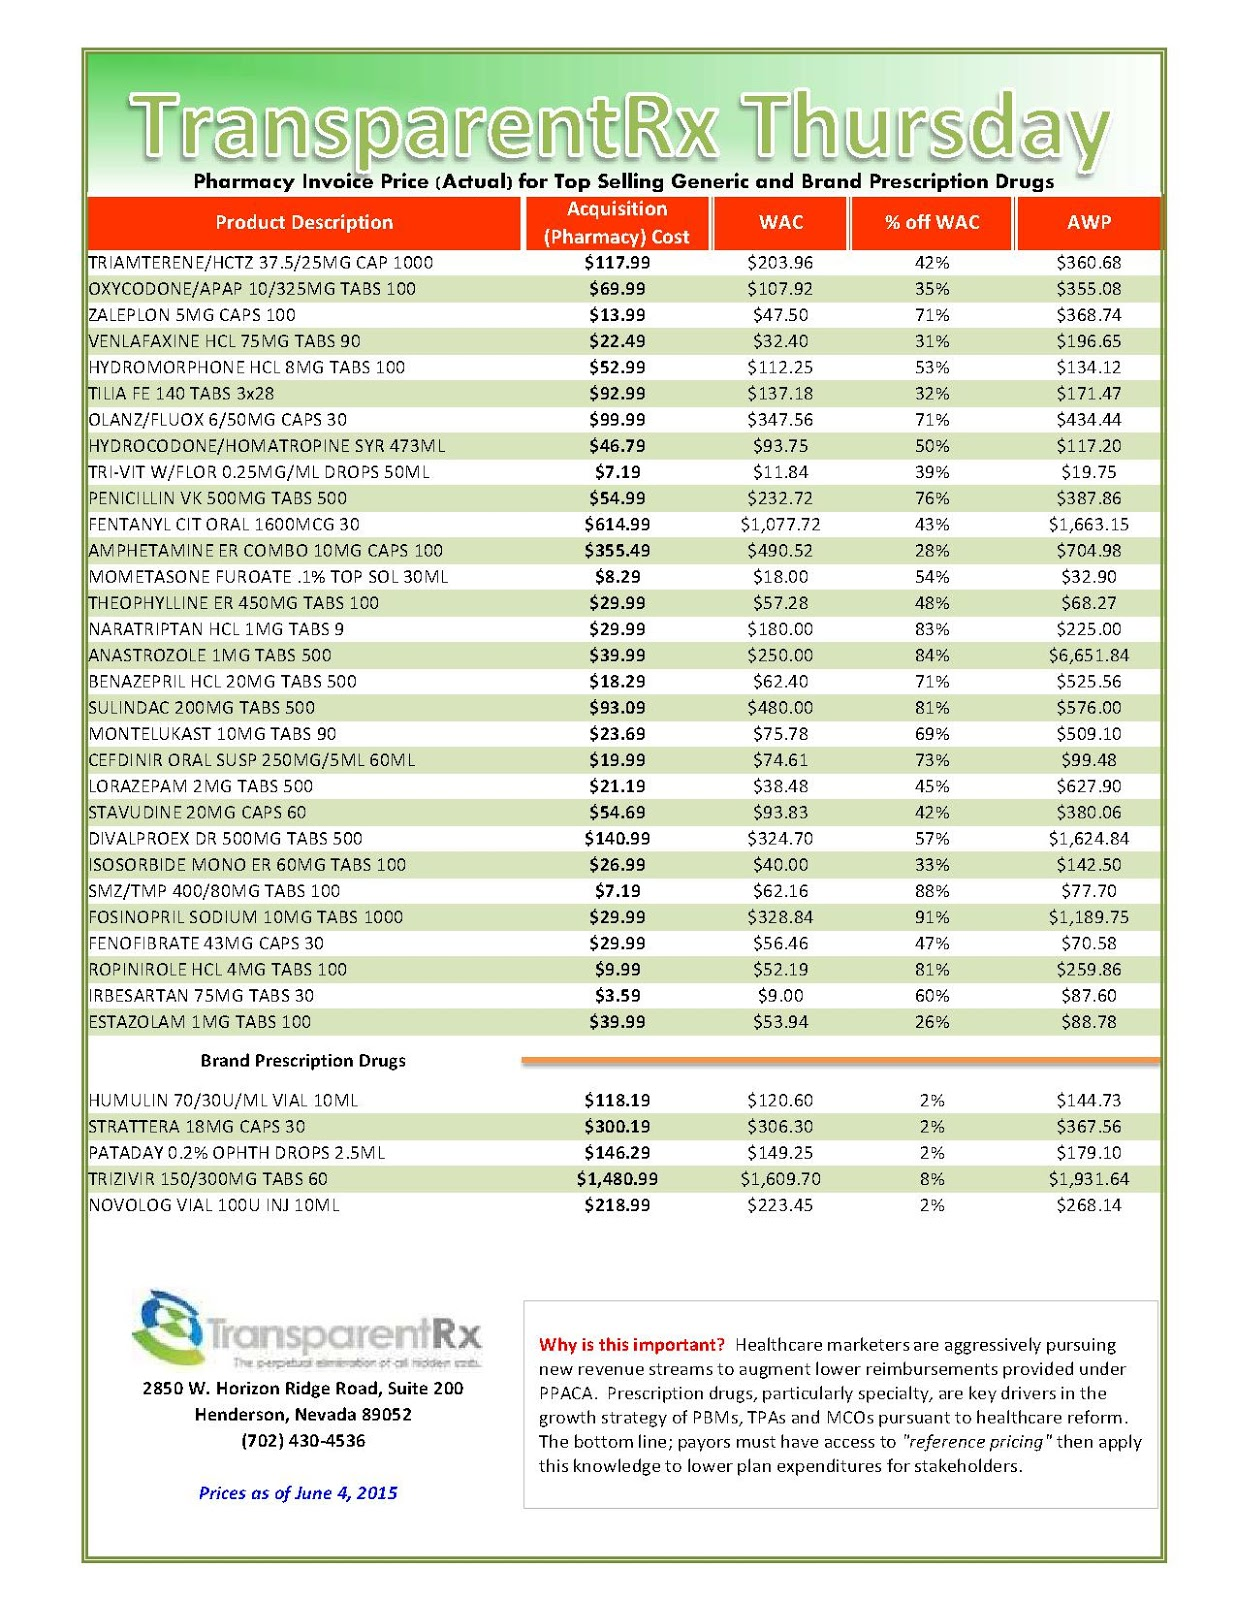 Healthcare alliance rxrelief - How To Determine If Your Company Or Client Is Overpaying